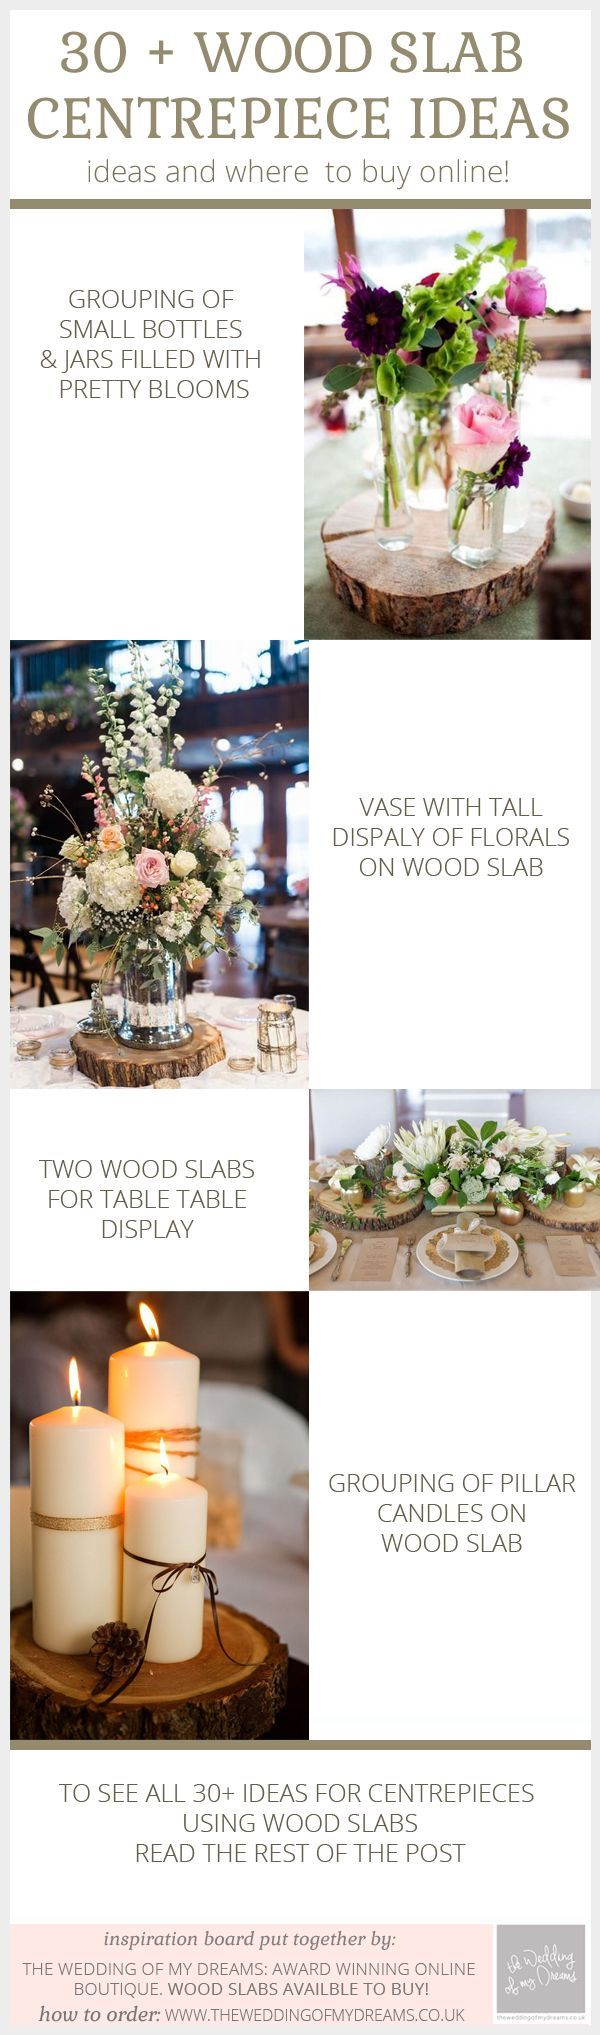 30 + Wooden Slab / Tree Slice Centrepiece ideas - buy tree slices online from www.theweddingofmydreams.co.uk: